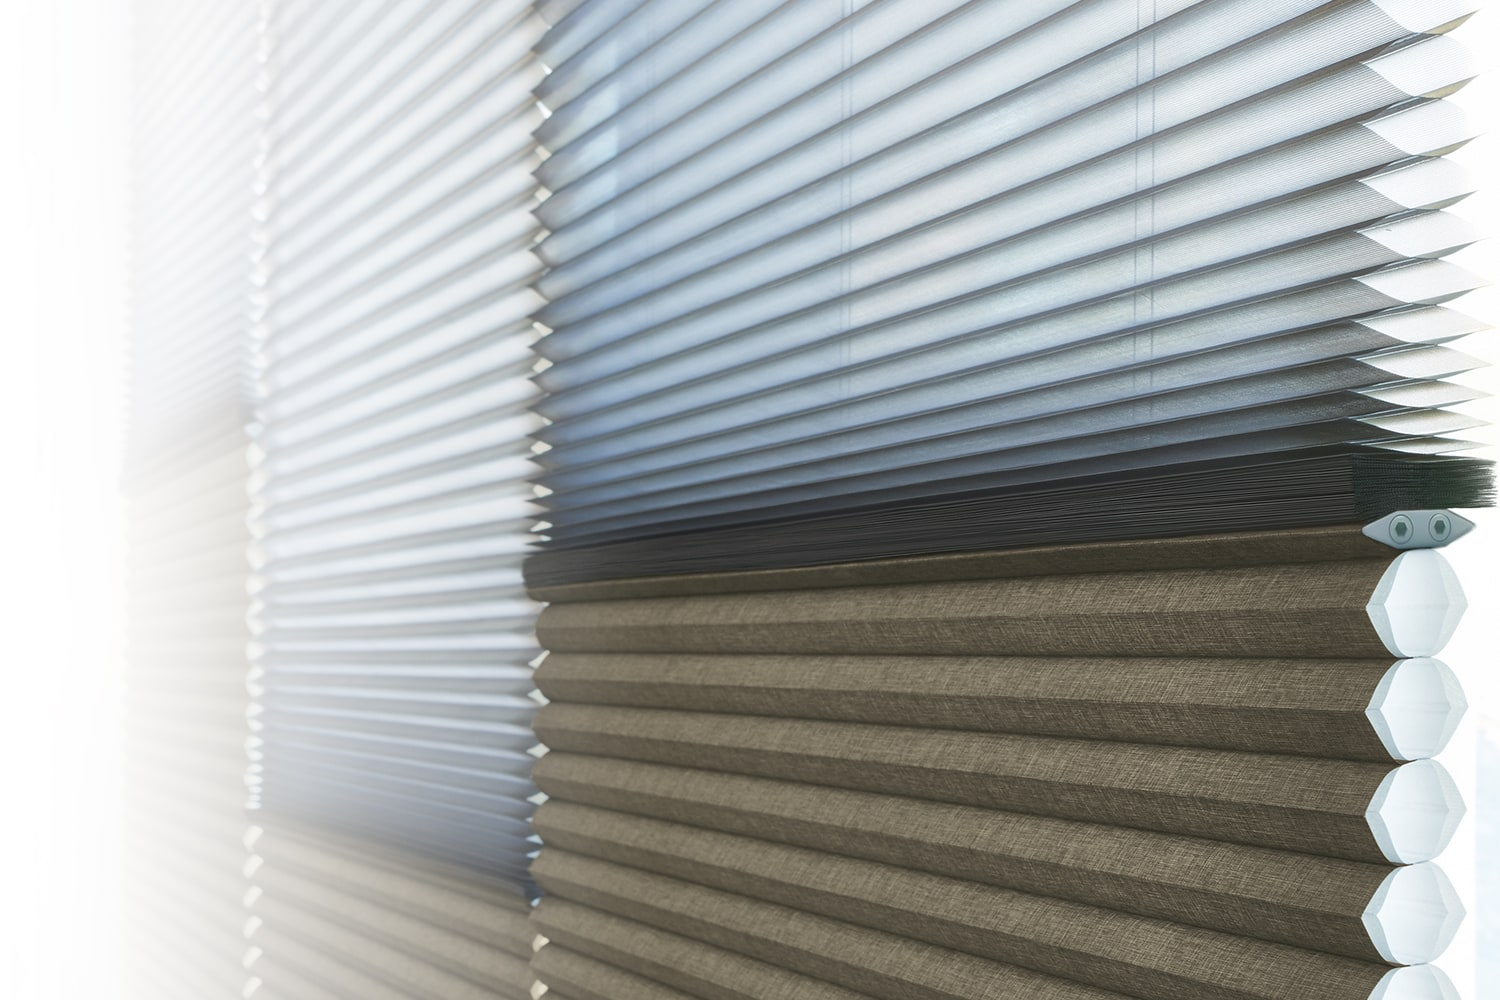 Duette Shades From Hunter Douglas Come In Multiple Cell Sizes.  Additionally, They Offer A Horizontal Or Vertiglide™ Vertical Orientation  Solution (perfect ...